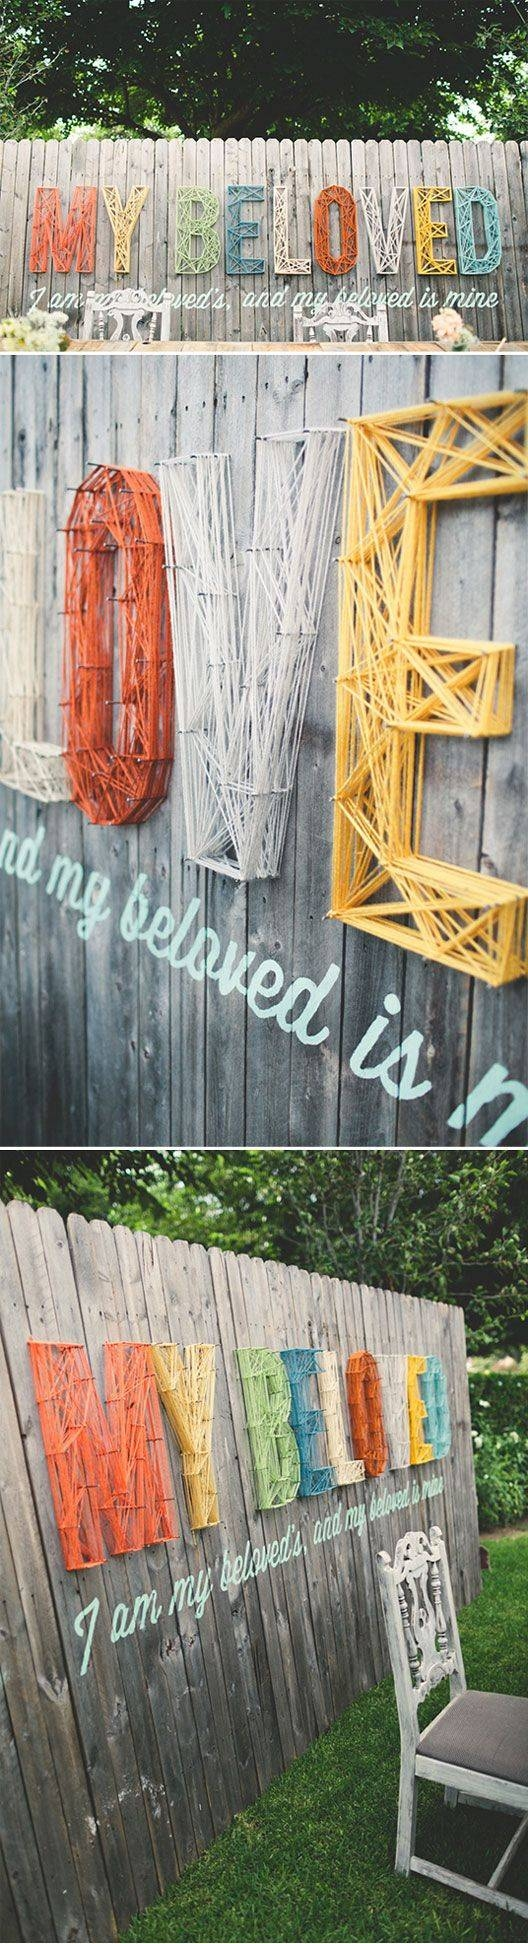 Incredible Diy Garden Fence Wall Art Ideas With Current Diy Garden Wall Art (View 17 of 25)